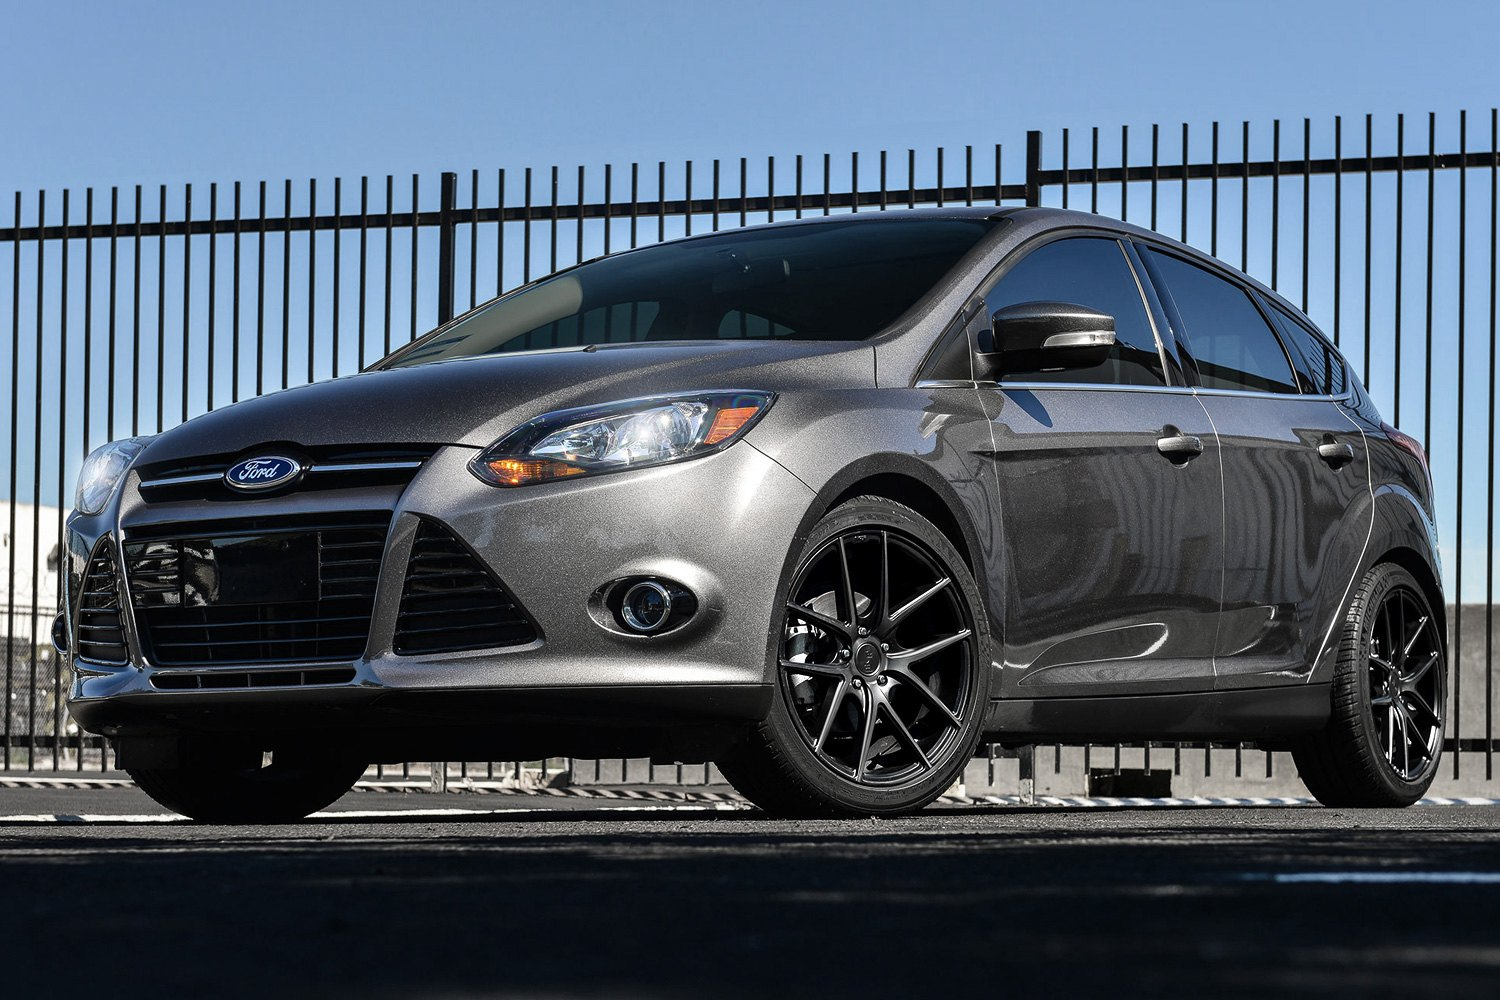 Targa black with machined face and double dark tint on ford focusniche